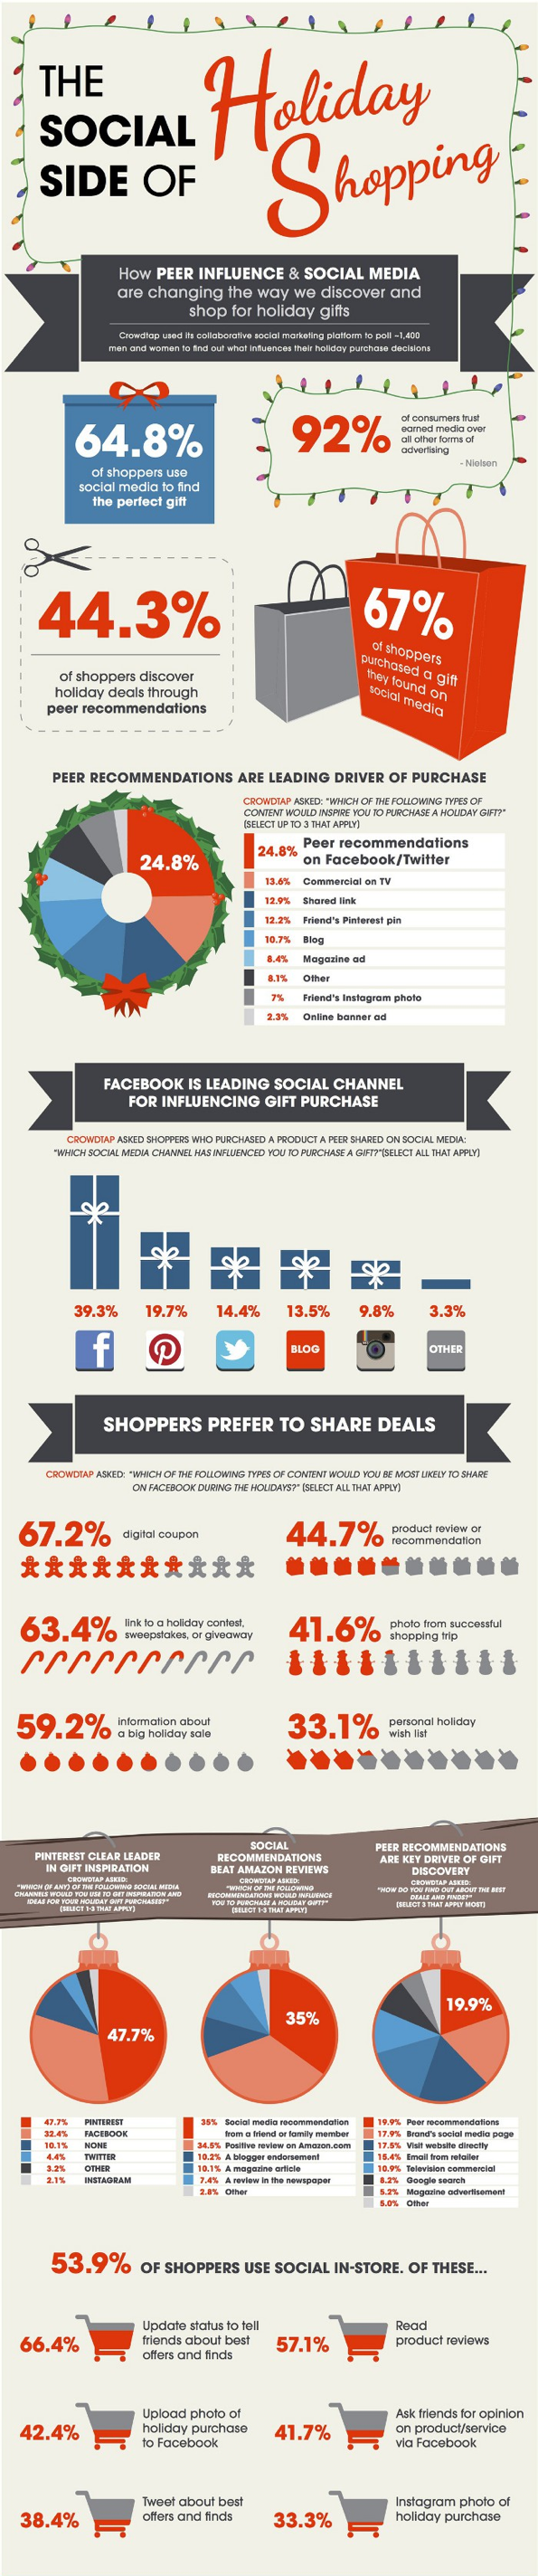 social-side-holiday-shopping-infographic